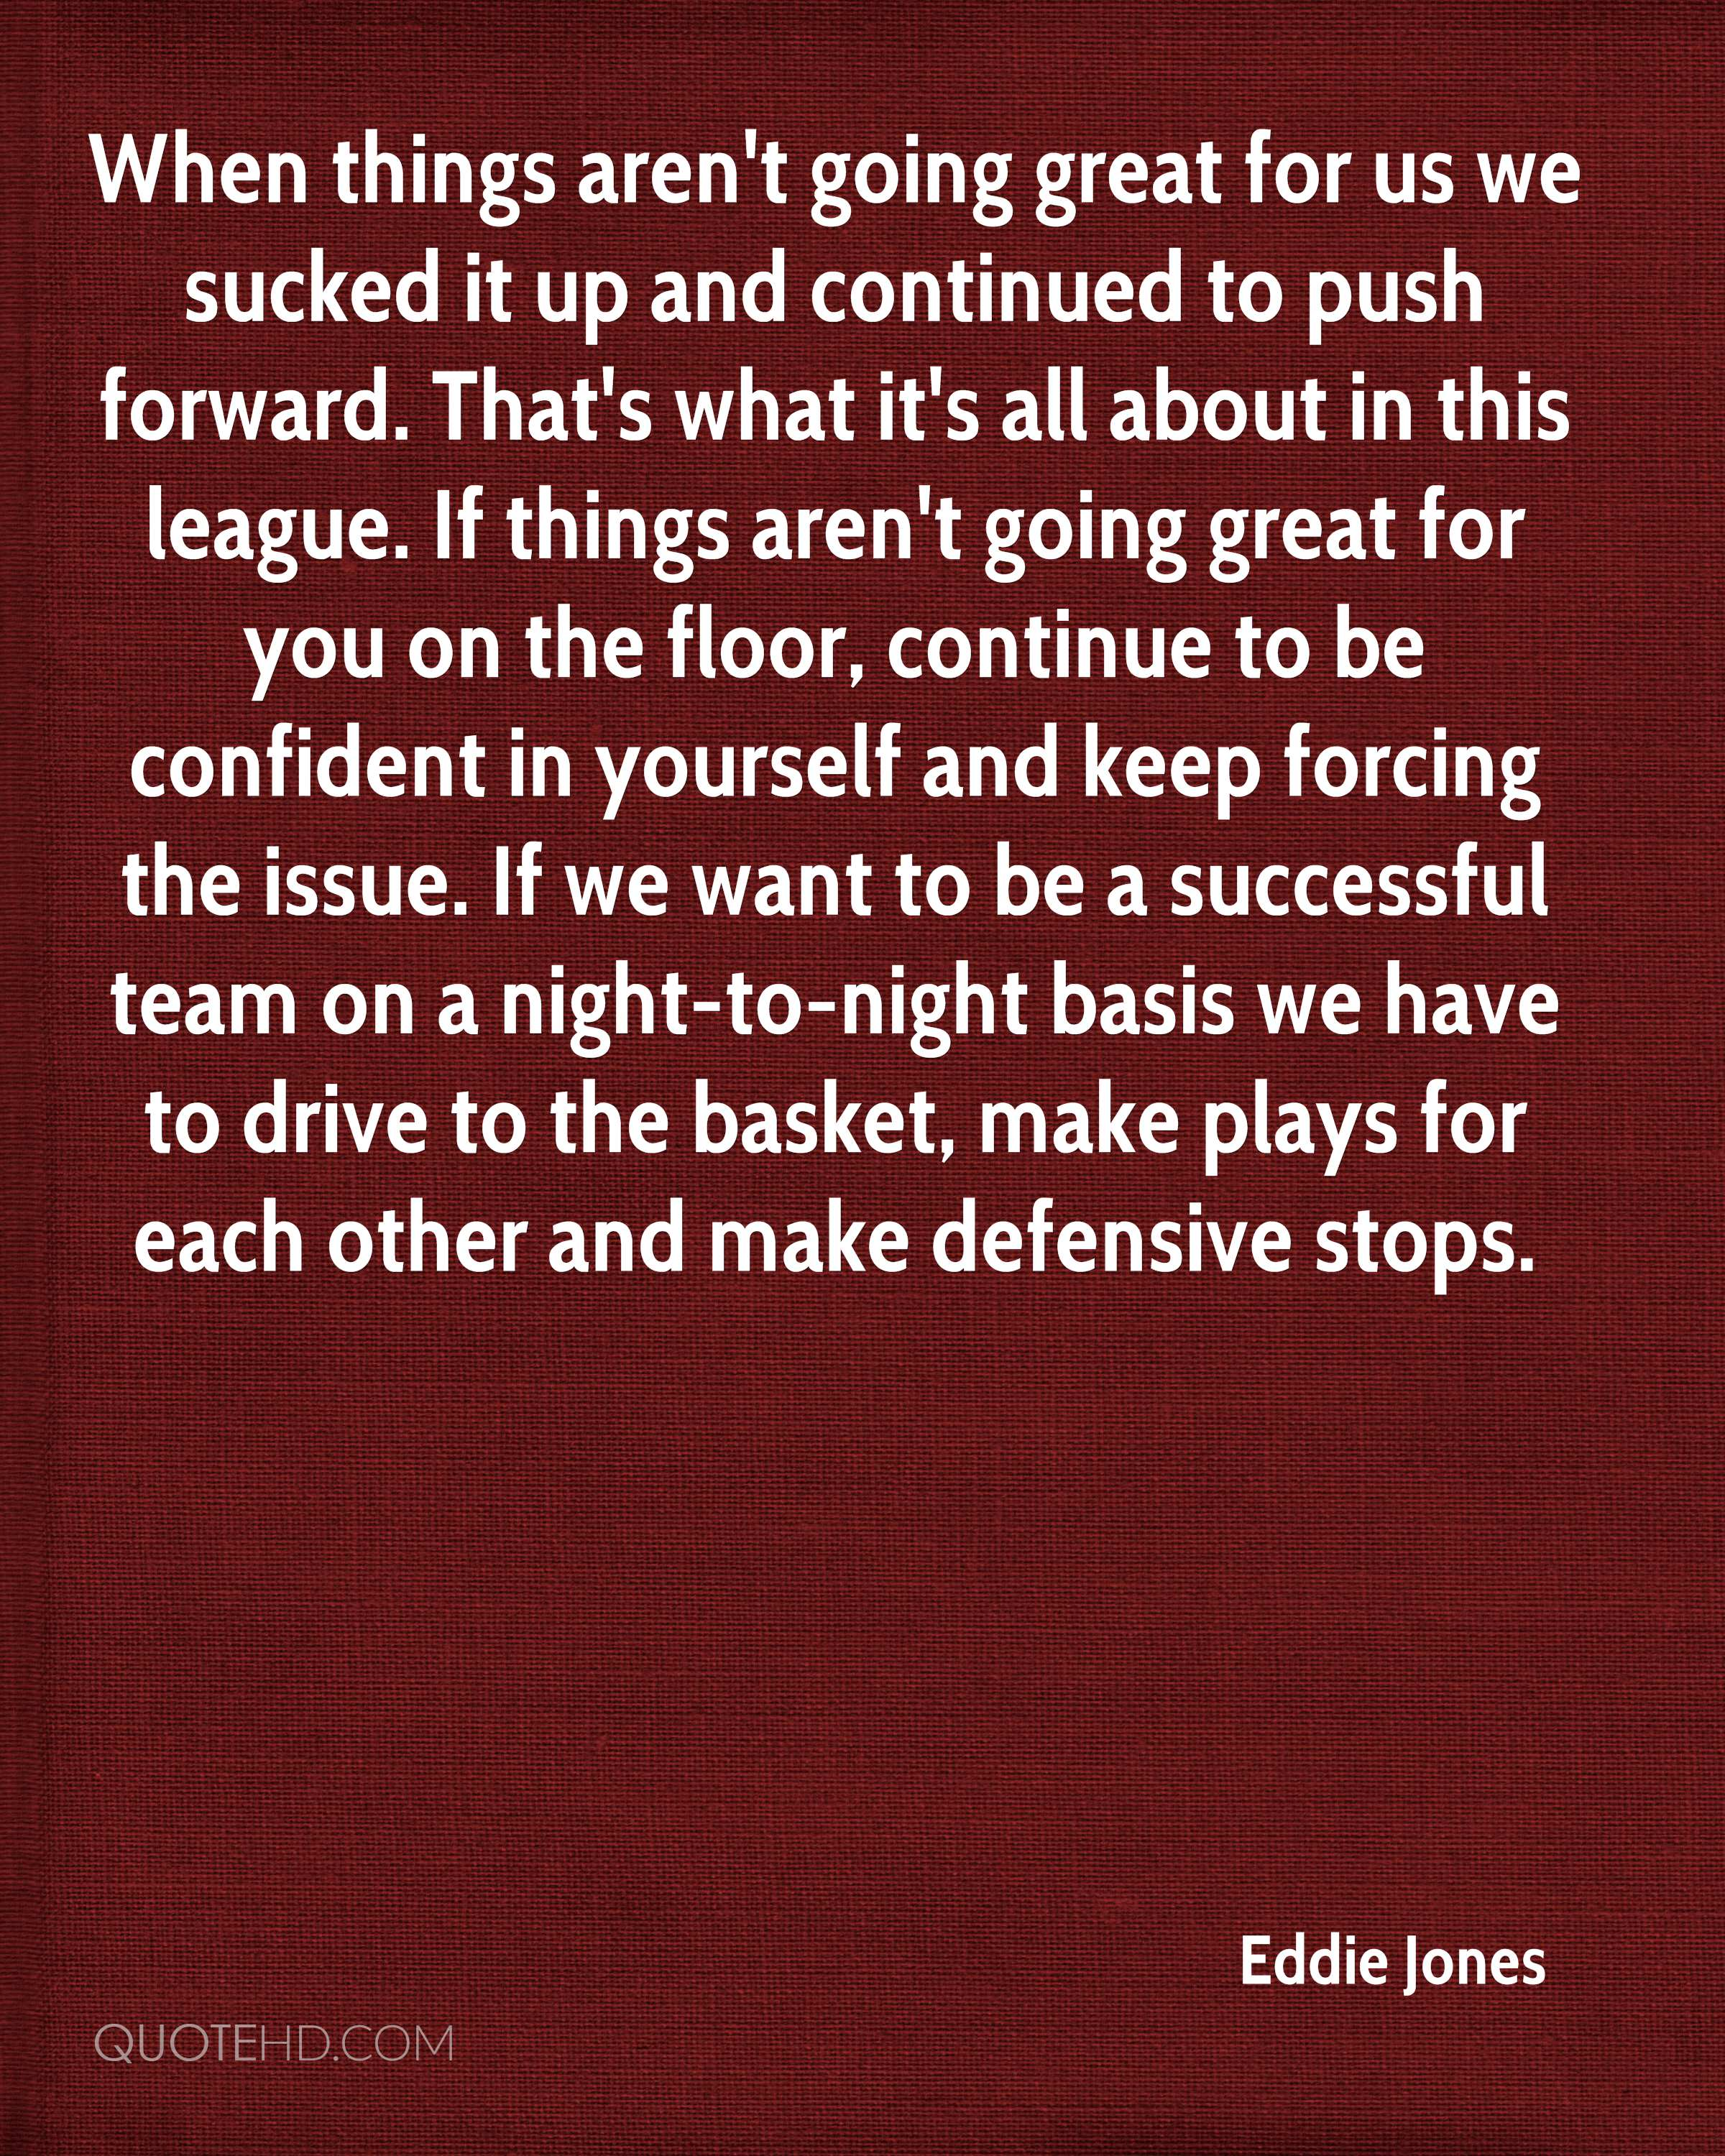 When things aren't going great for us we sucked it up and continued to push forward. That's what it's all about in this league. If things aren't going great for you on the floor, continue to be confident in yourself and keep forcing the issue. If we want to be a successful team on a night-to-night basis we have to drive to the basket, make plays for each other and make defensive stops.